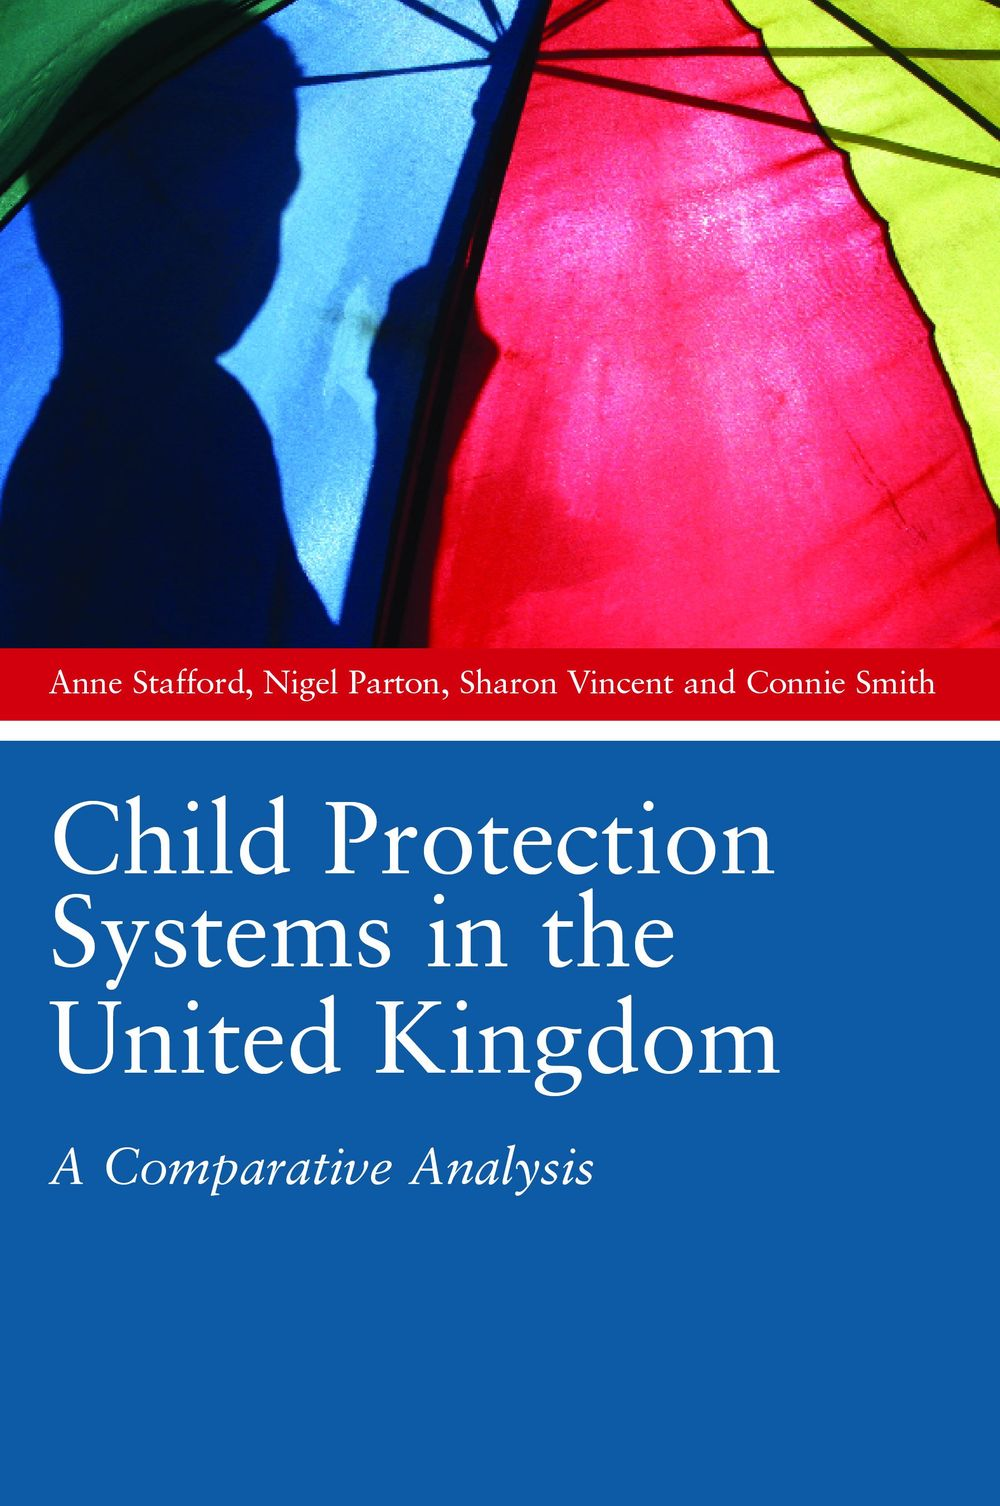 Child Protection Systems in the United Kingdom A Comparative Analysis